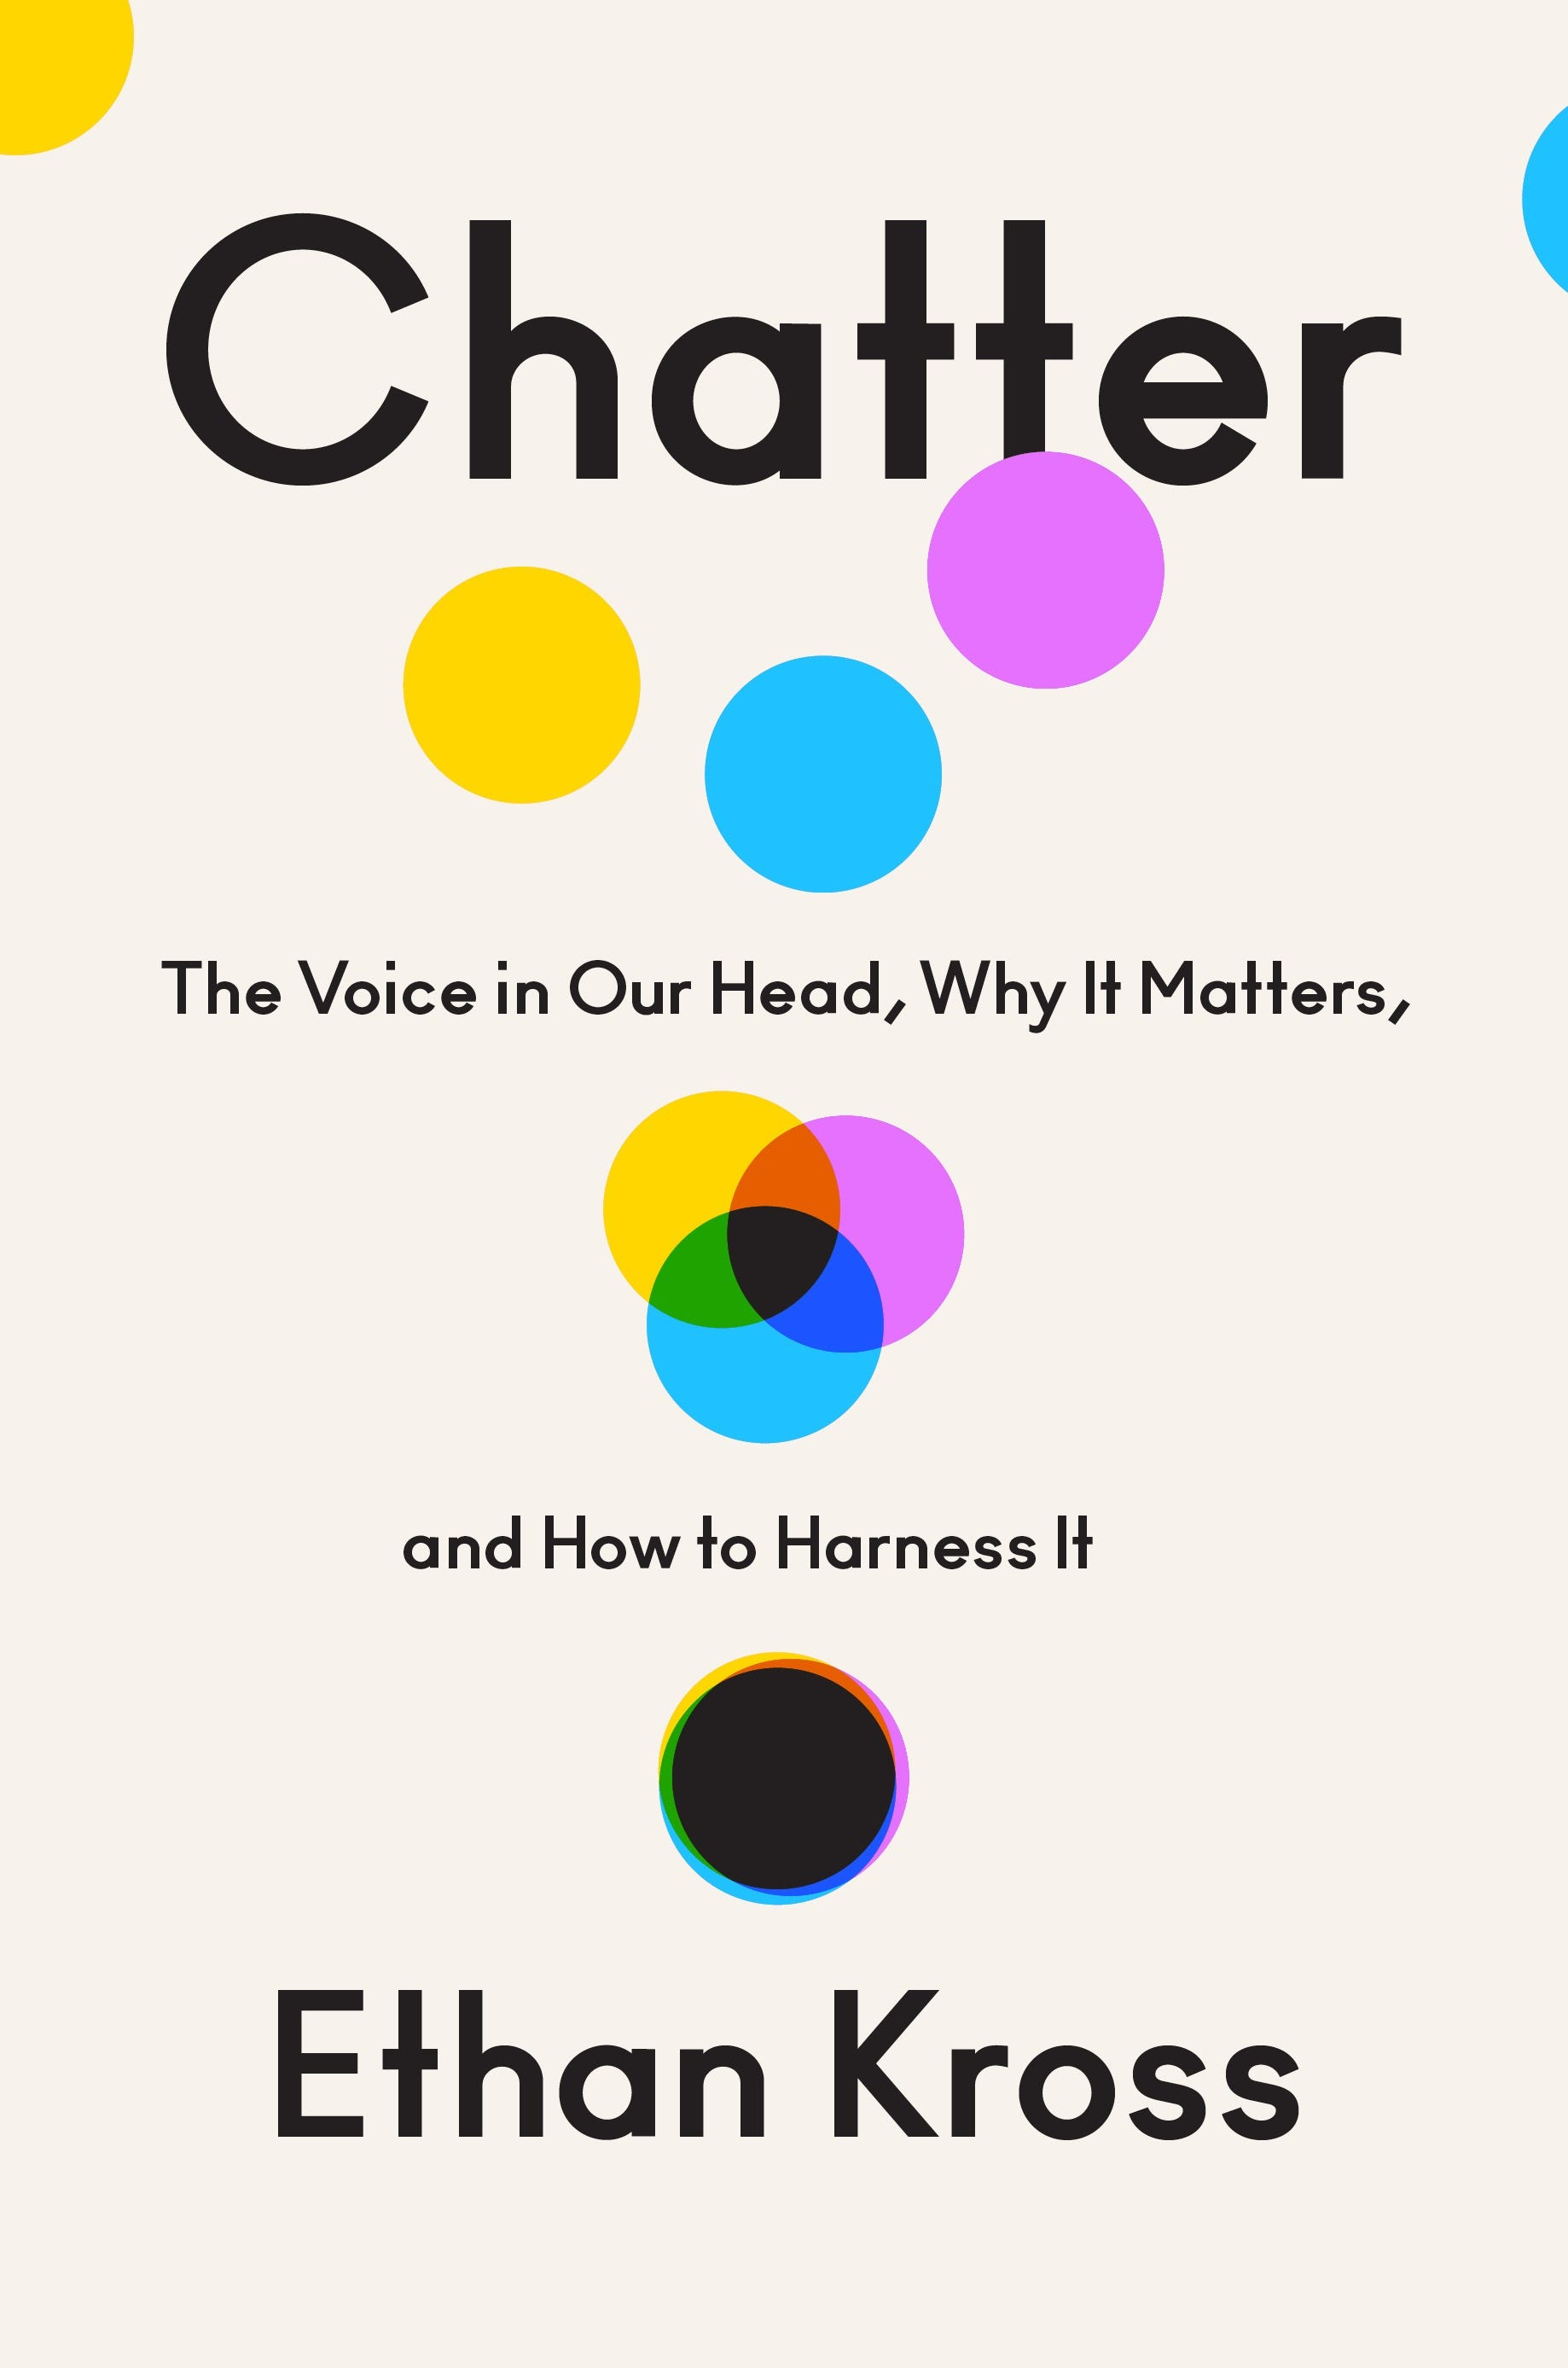 Review: Ethan Kross' new book 'Chatter' helps us quell our harmful negative self-talk